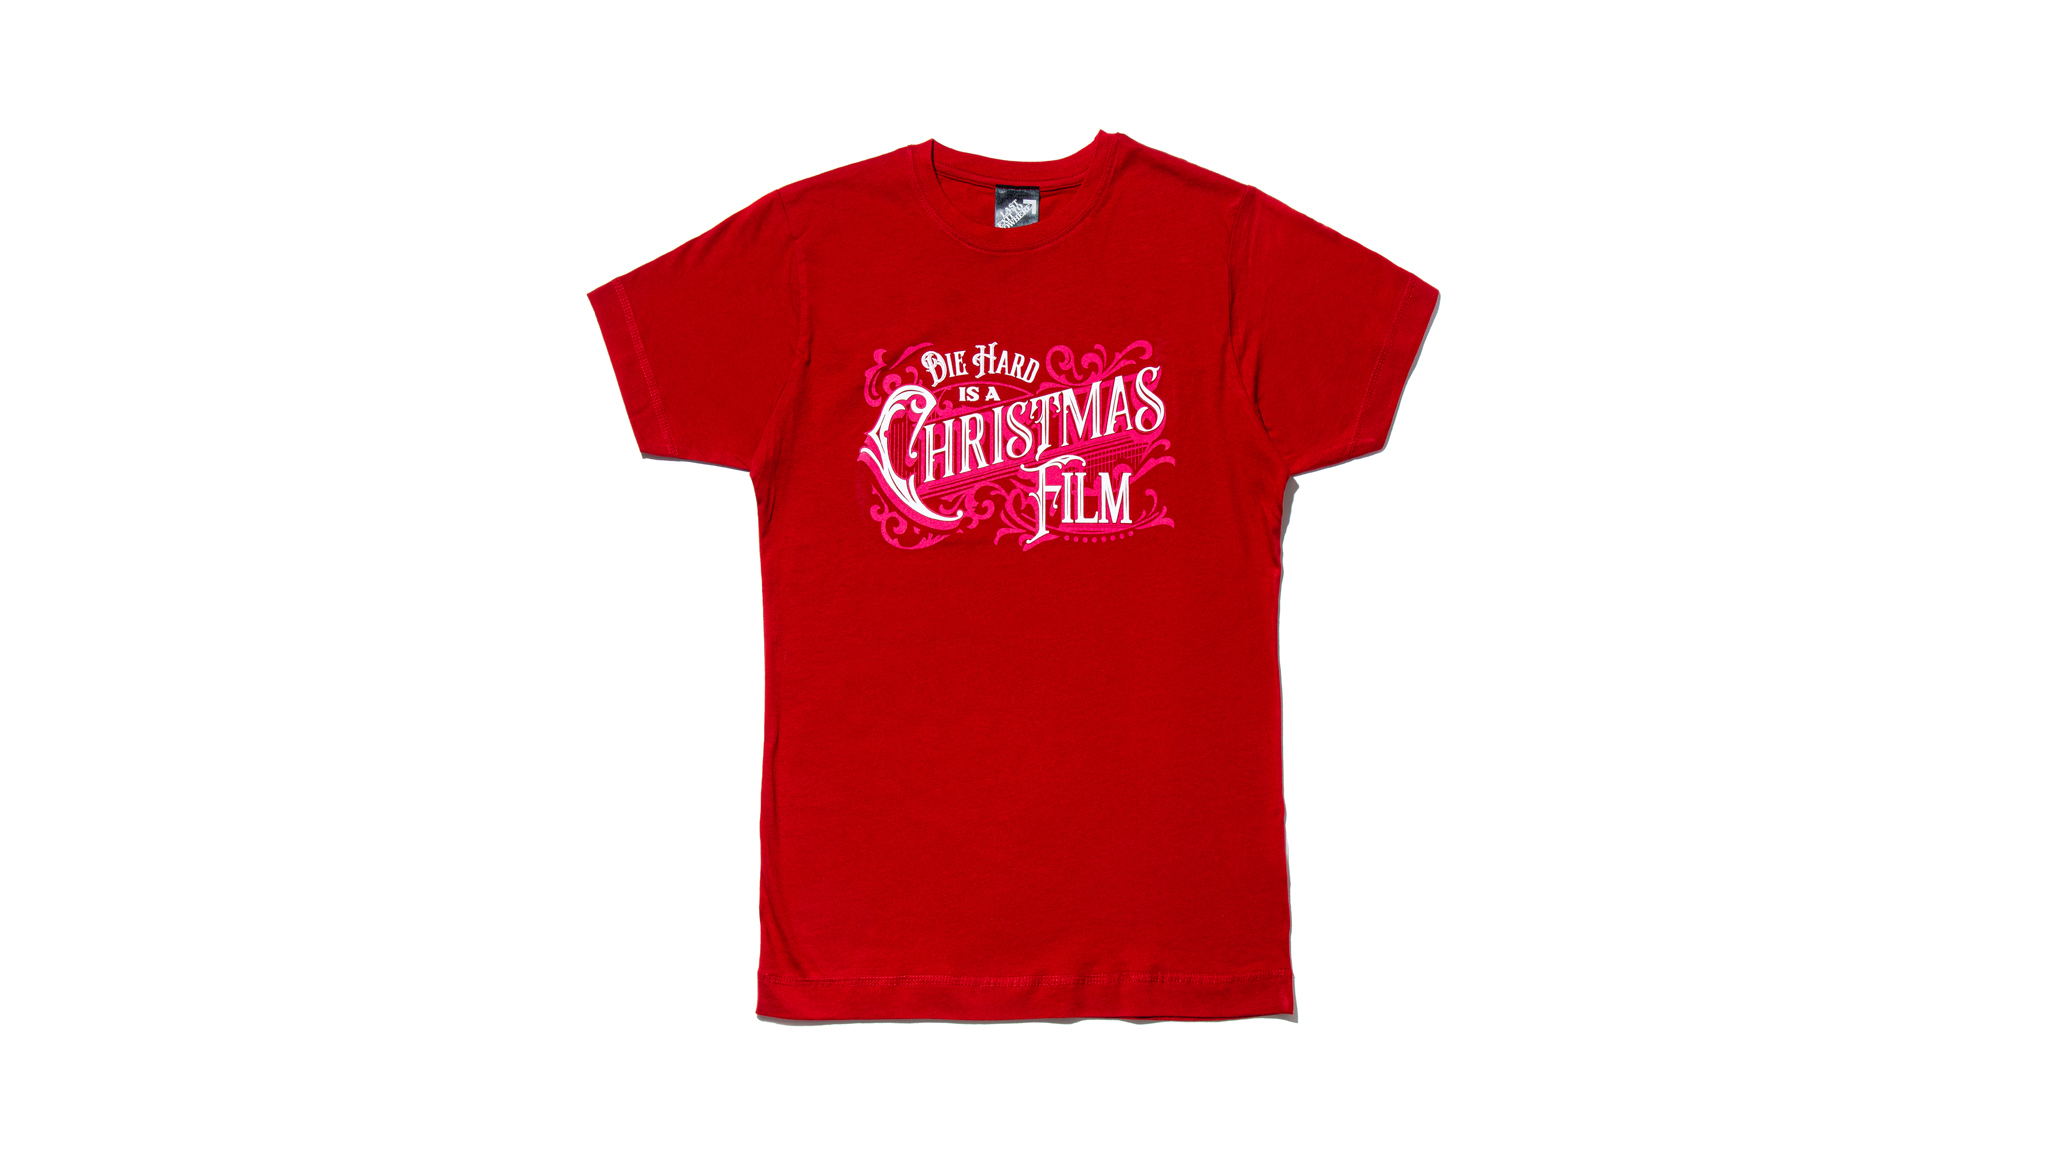 Die Hard is a Christmas Film T-shirt